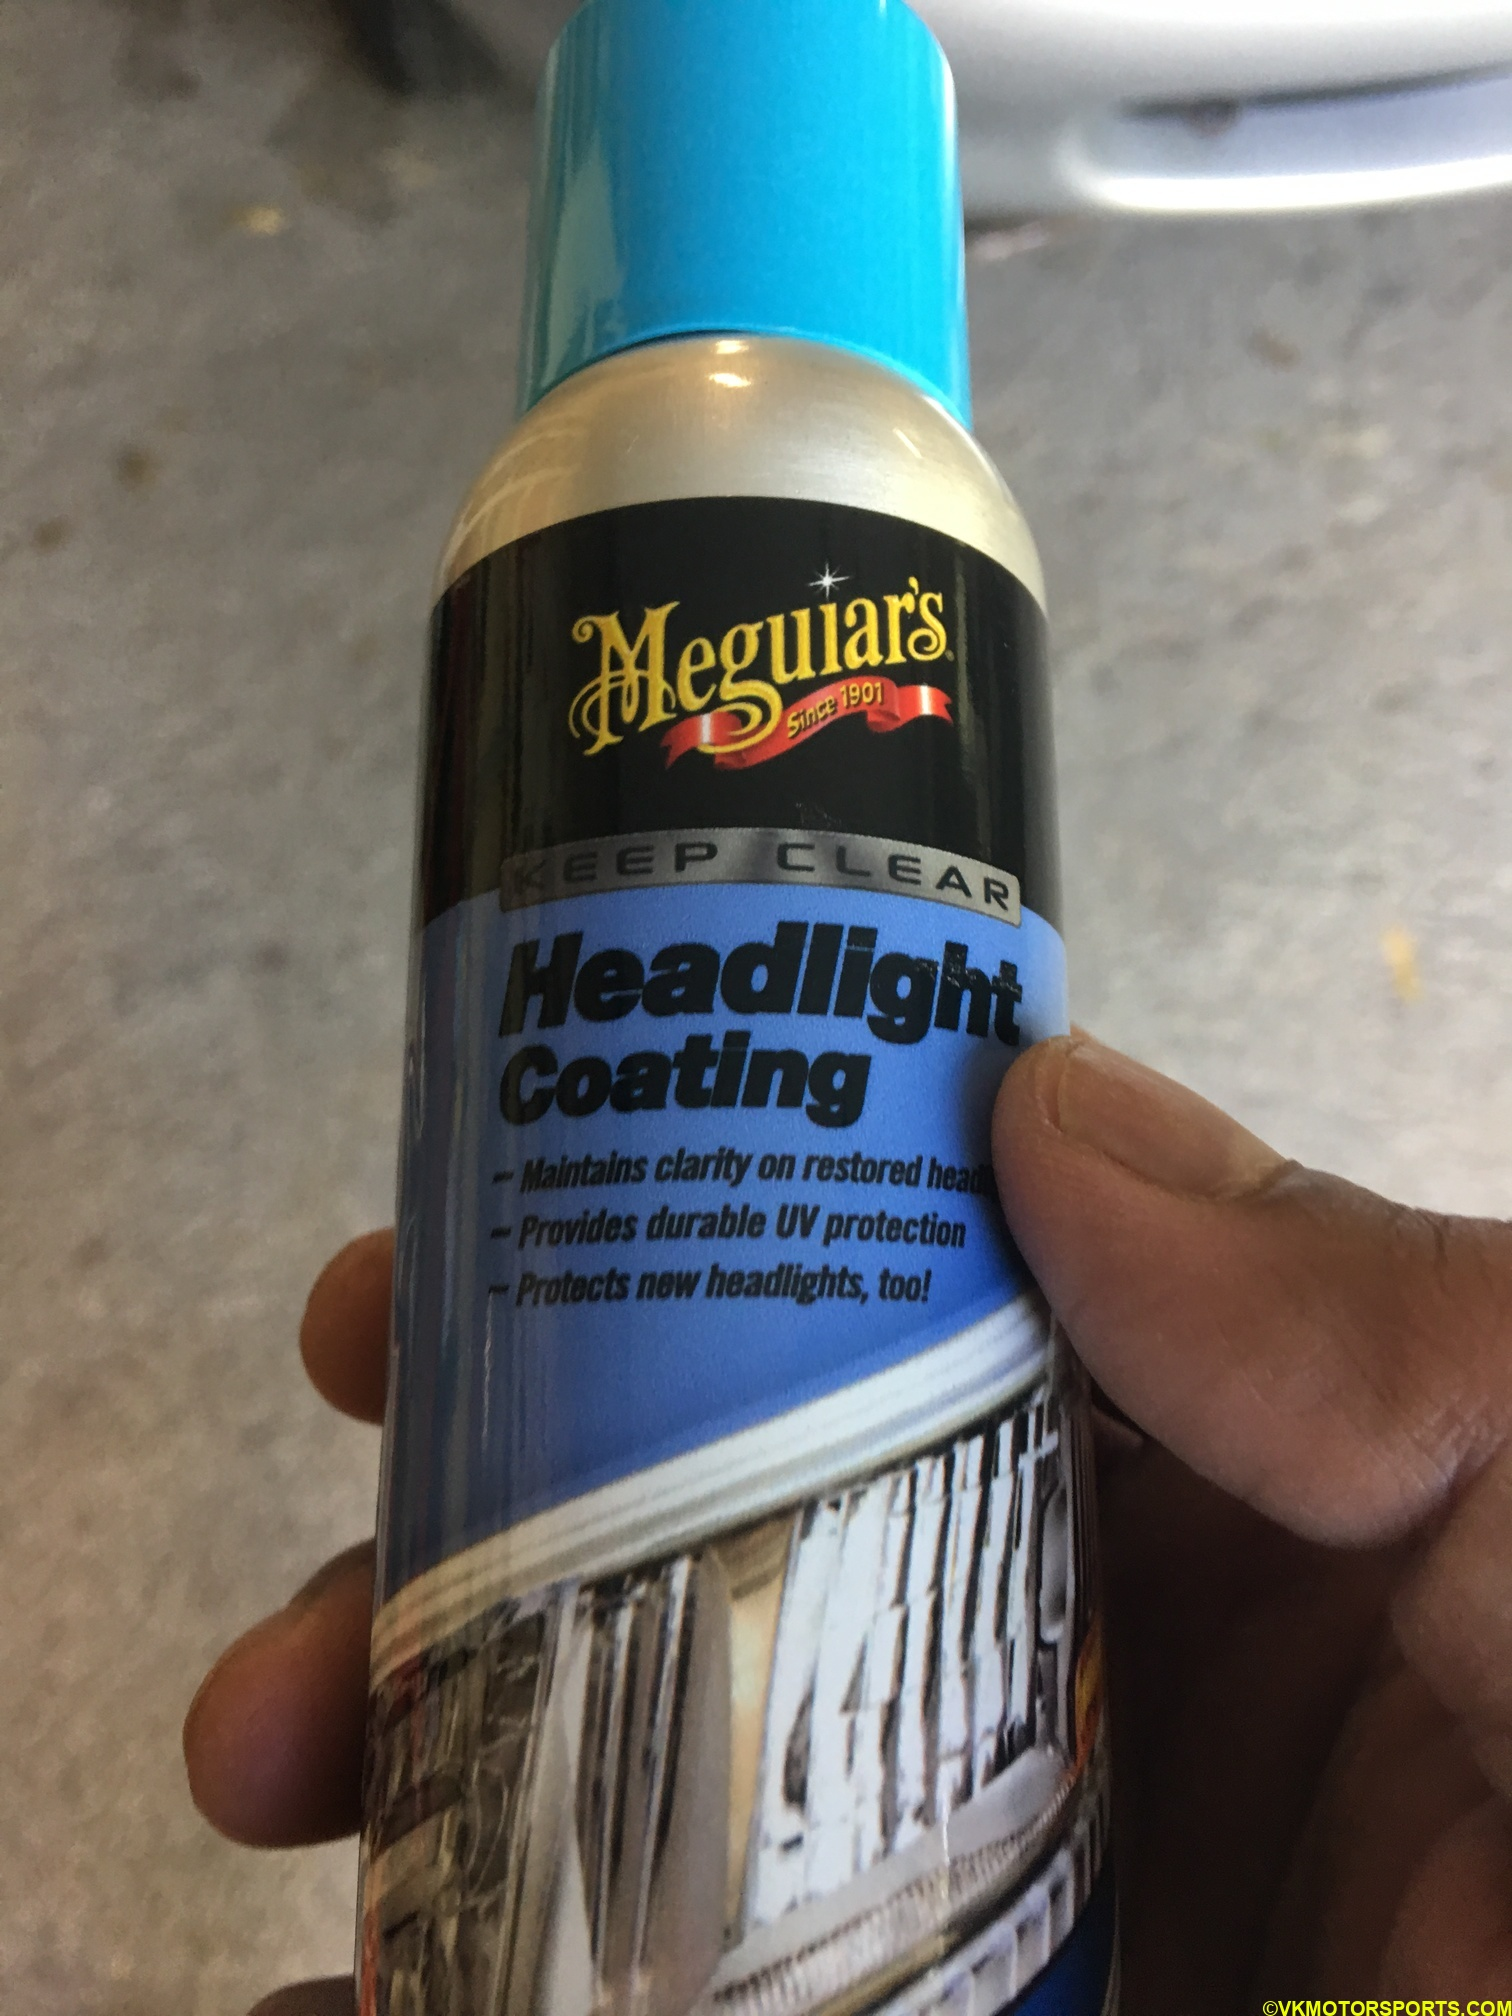 Headlight coating can